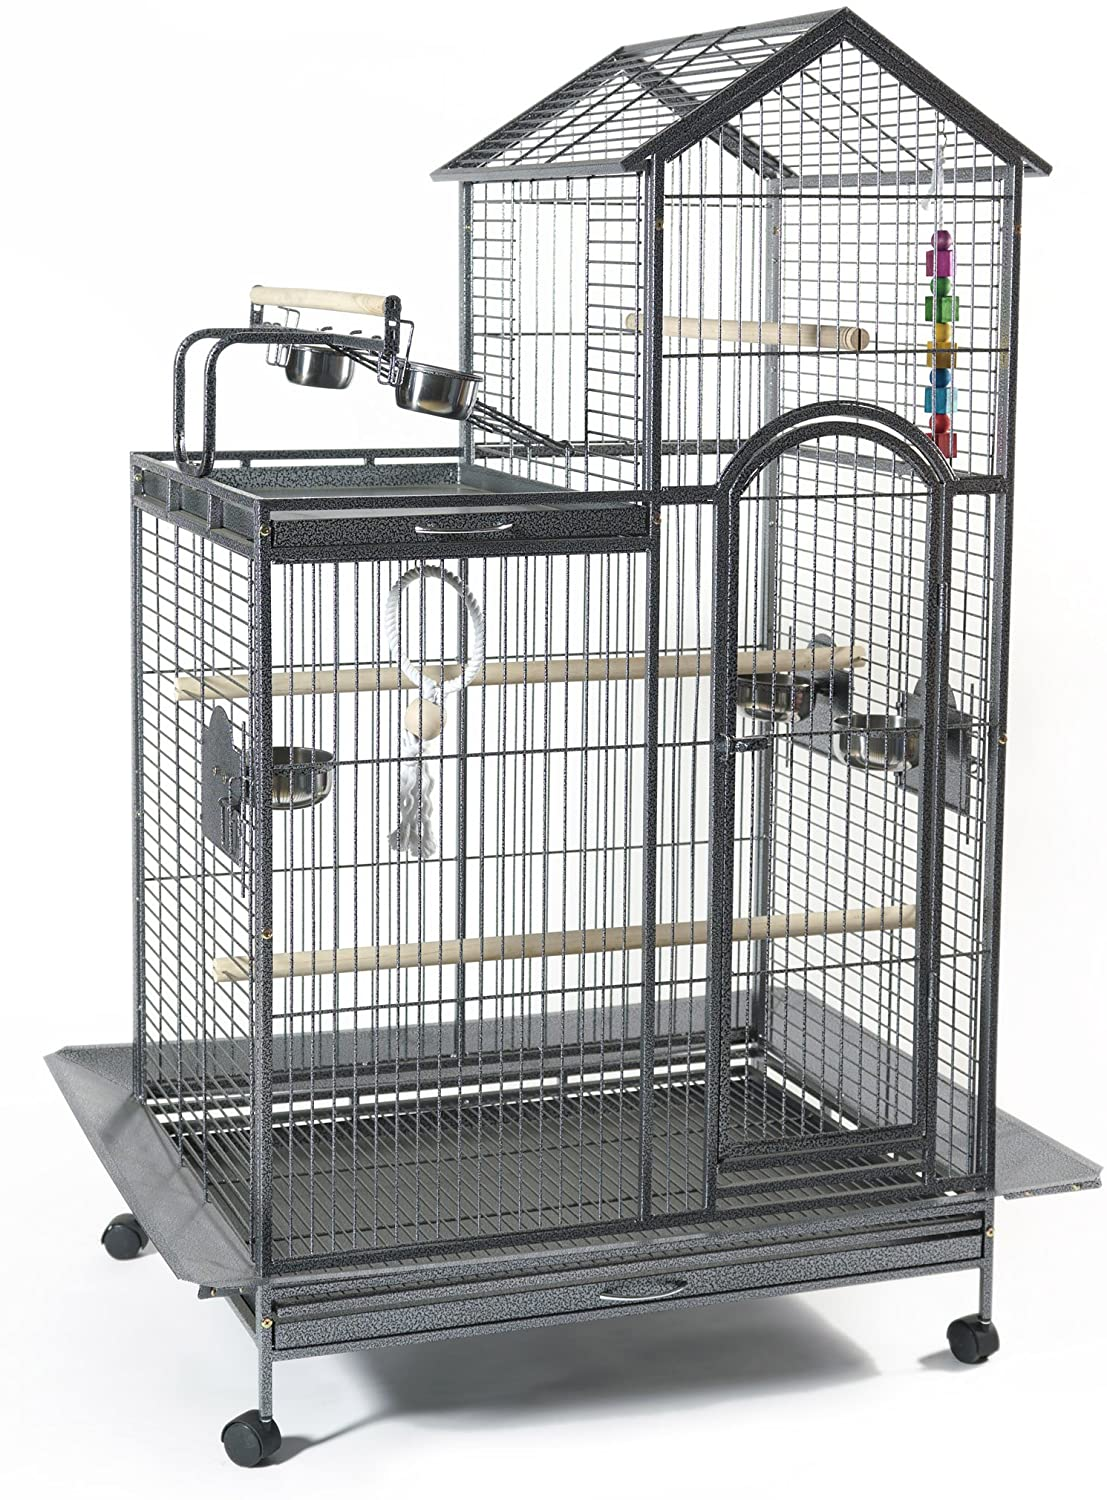 Things to Consider Before Buying a Bird Cage